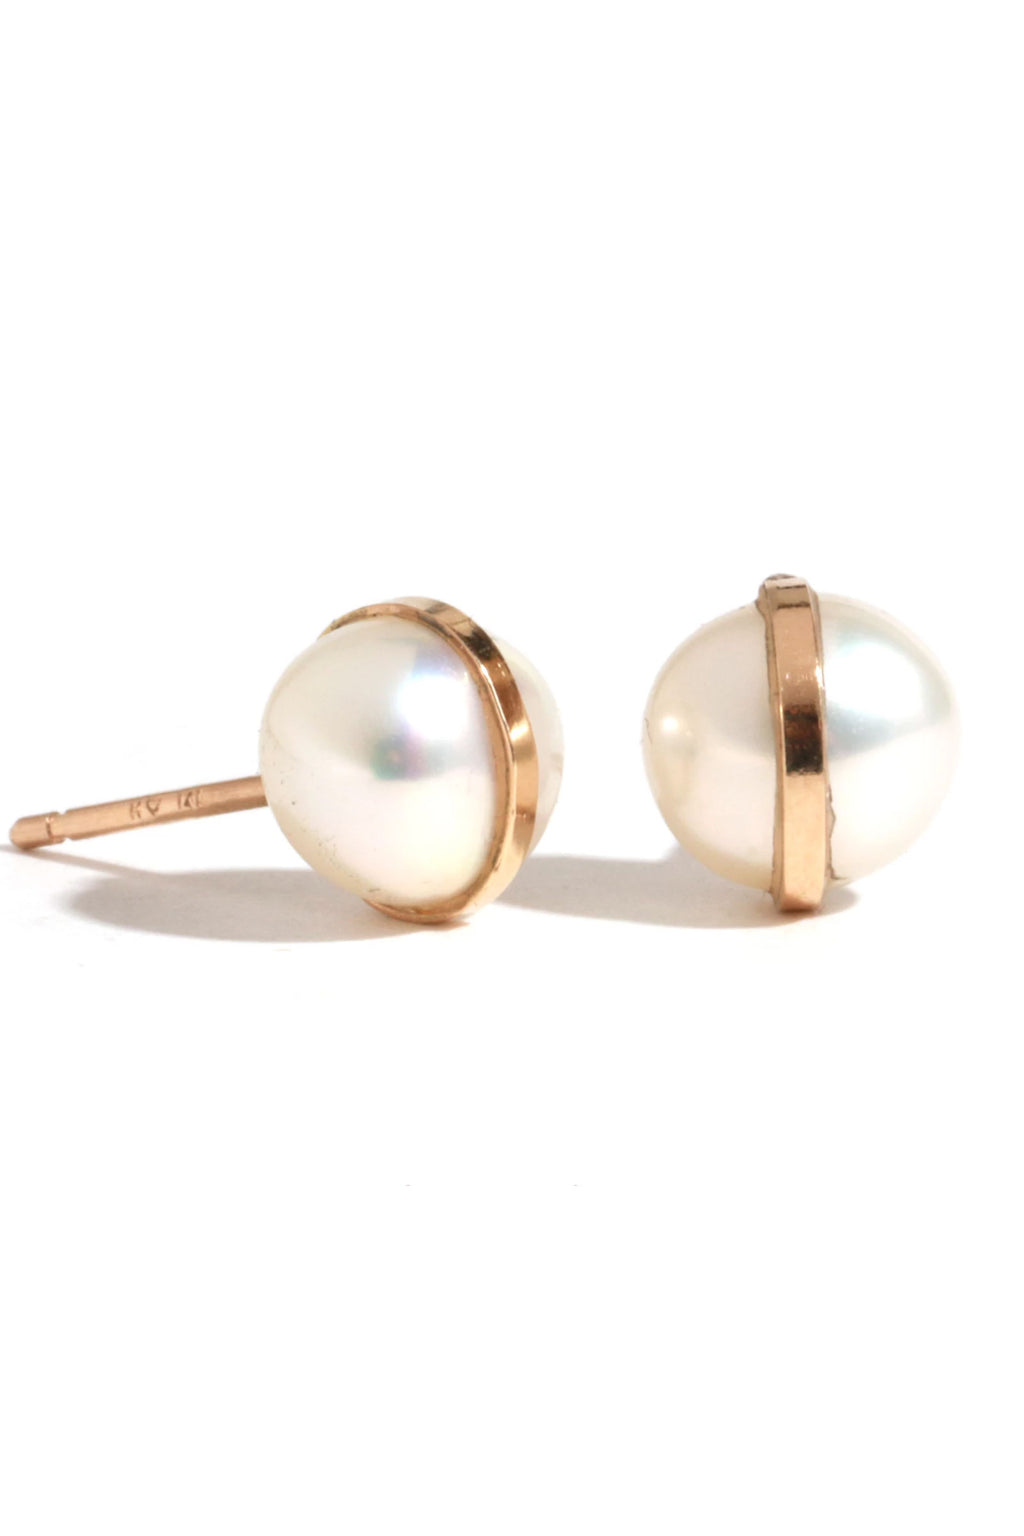 Melissa Joy Manning 14k Yellow Gold Pearl Post Earring